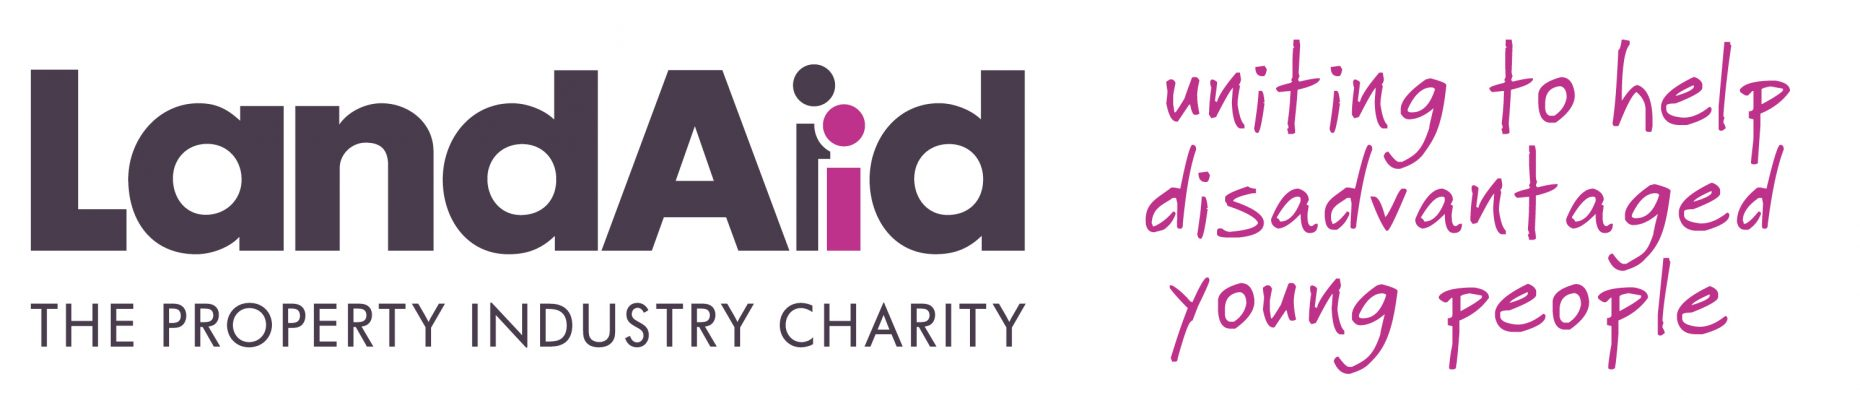 LandAid Virtual Quiz hosted by Farebrother raises £3,500